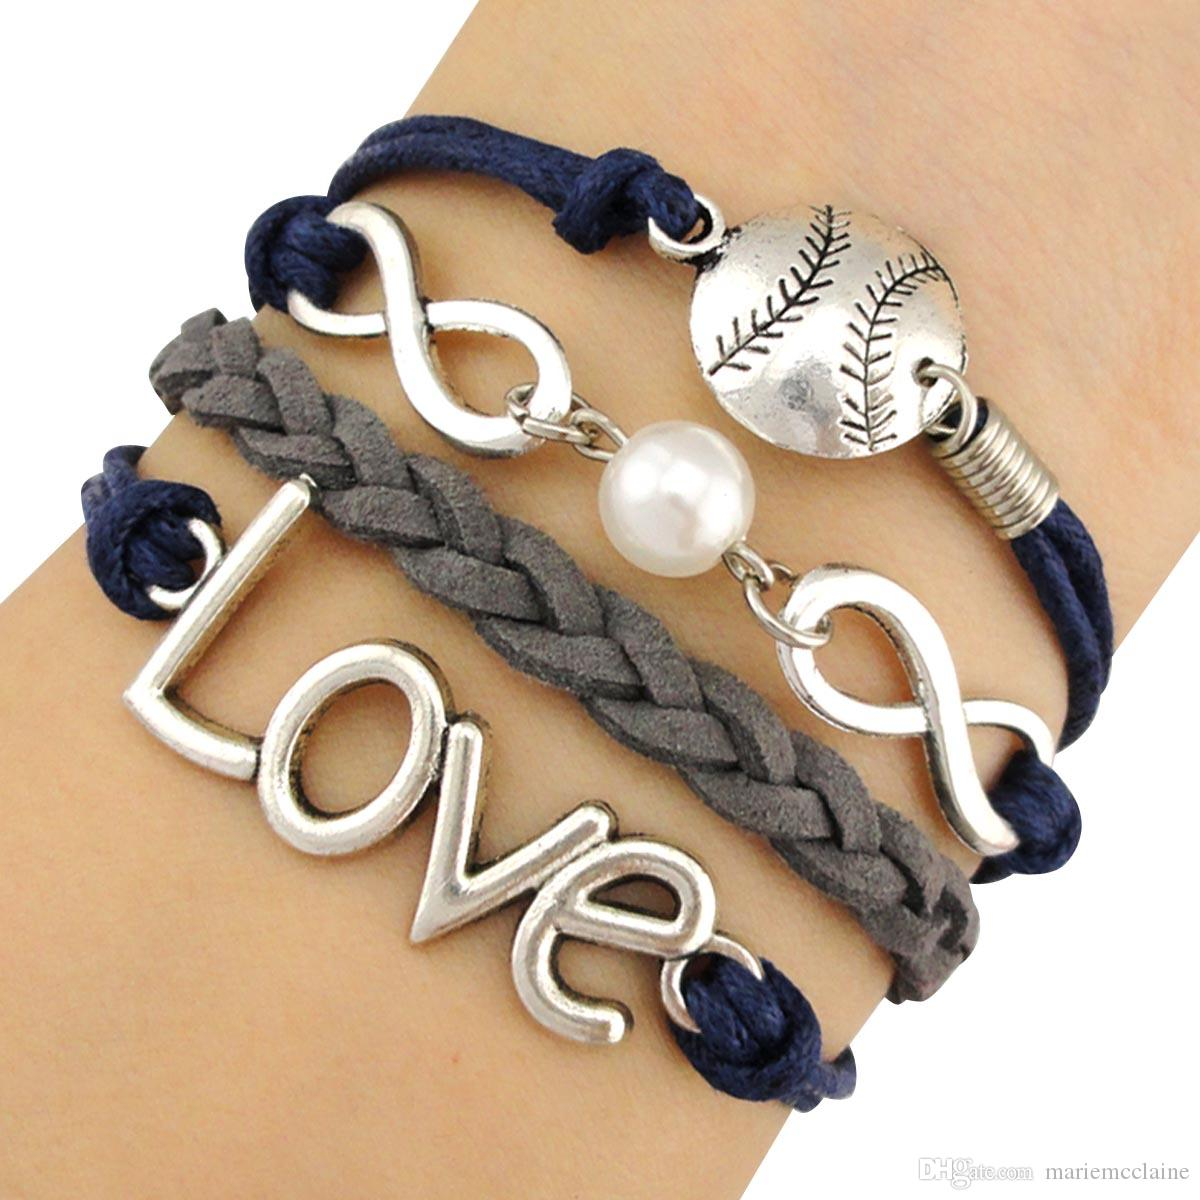 Baseball Charm Bracelet: Infinity Wish Love Baseball Softball Sports Pendant Ball